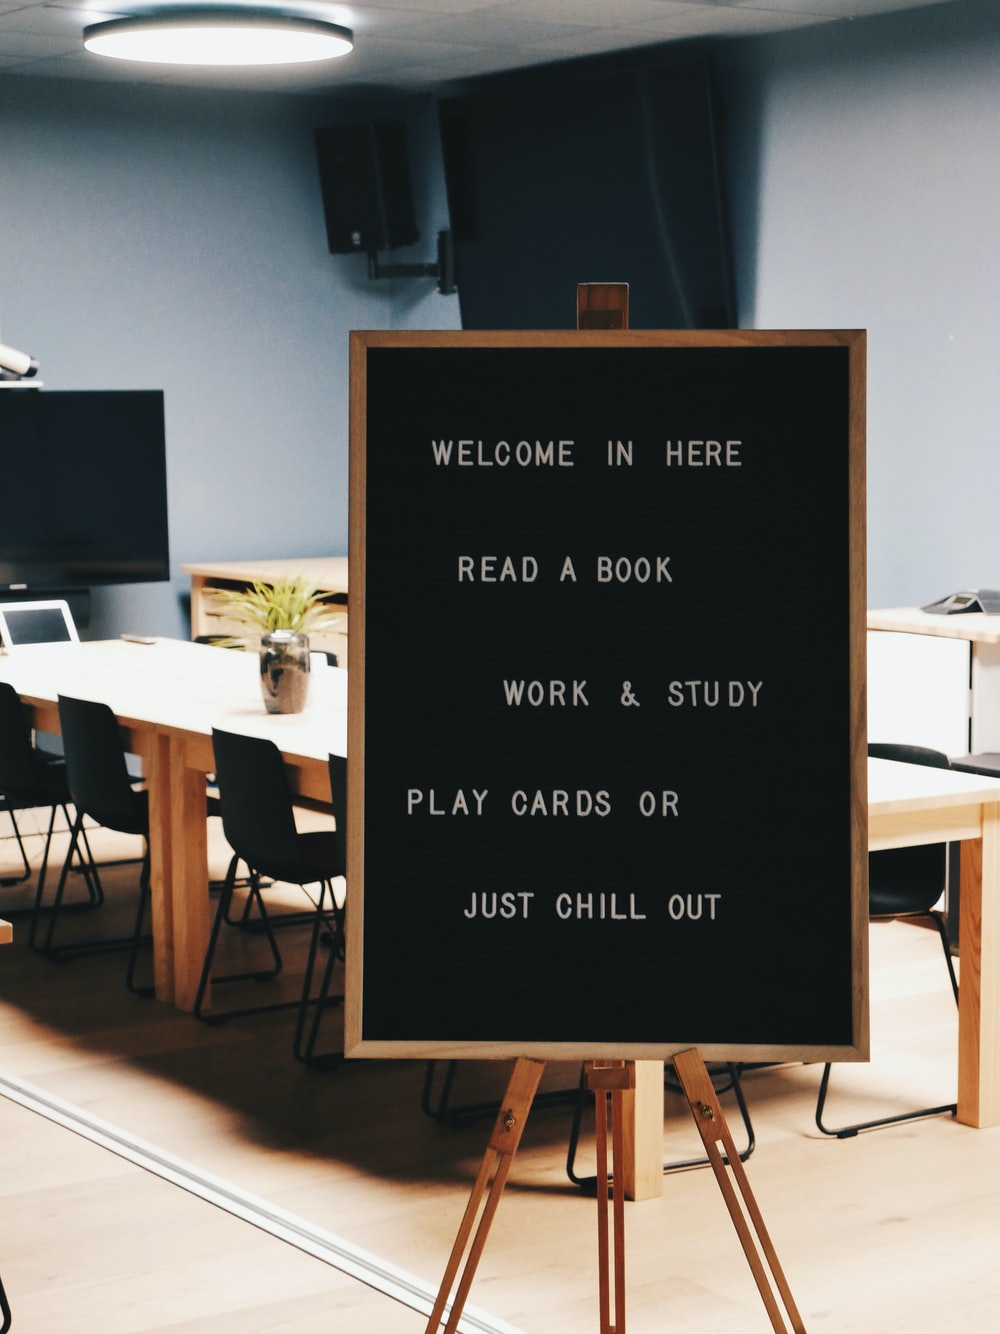 Welcome In Here Read A Book Work & Study Play Cards or Just Chill Out wooden sign